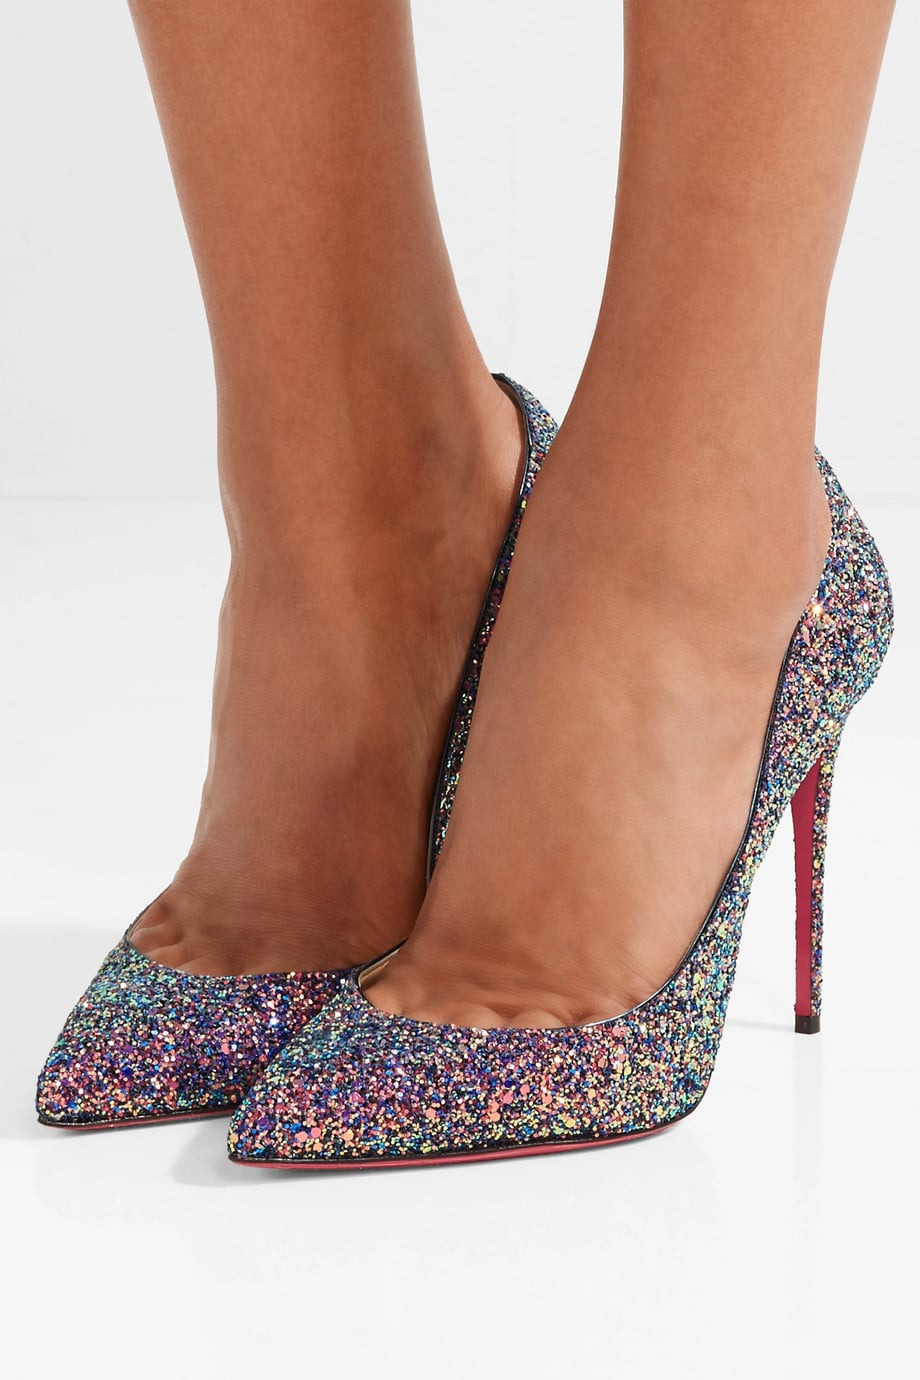 online store 2efe5 b4e3a Christian Louboutin Pigalle Follies Glittered Pumps | These ...